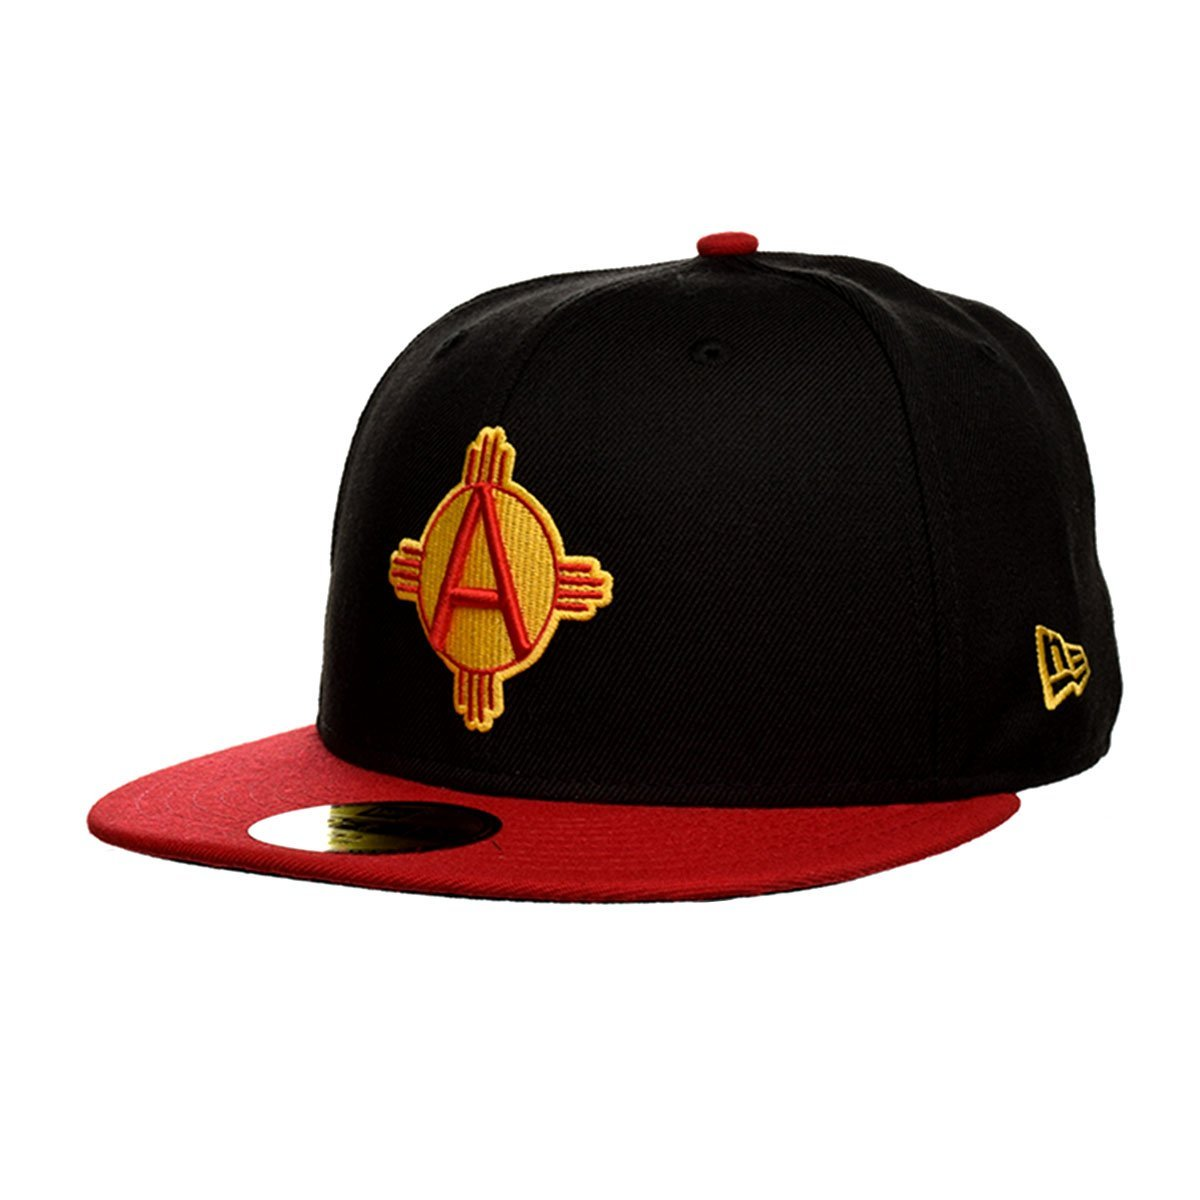 6f90504907f Get Quotations · New Era Albuquerque Dukes 59Fifty Zia Fitted Hat (Black)